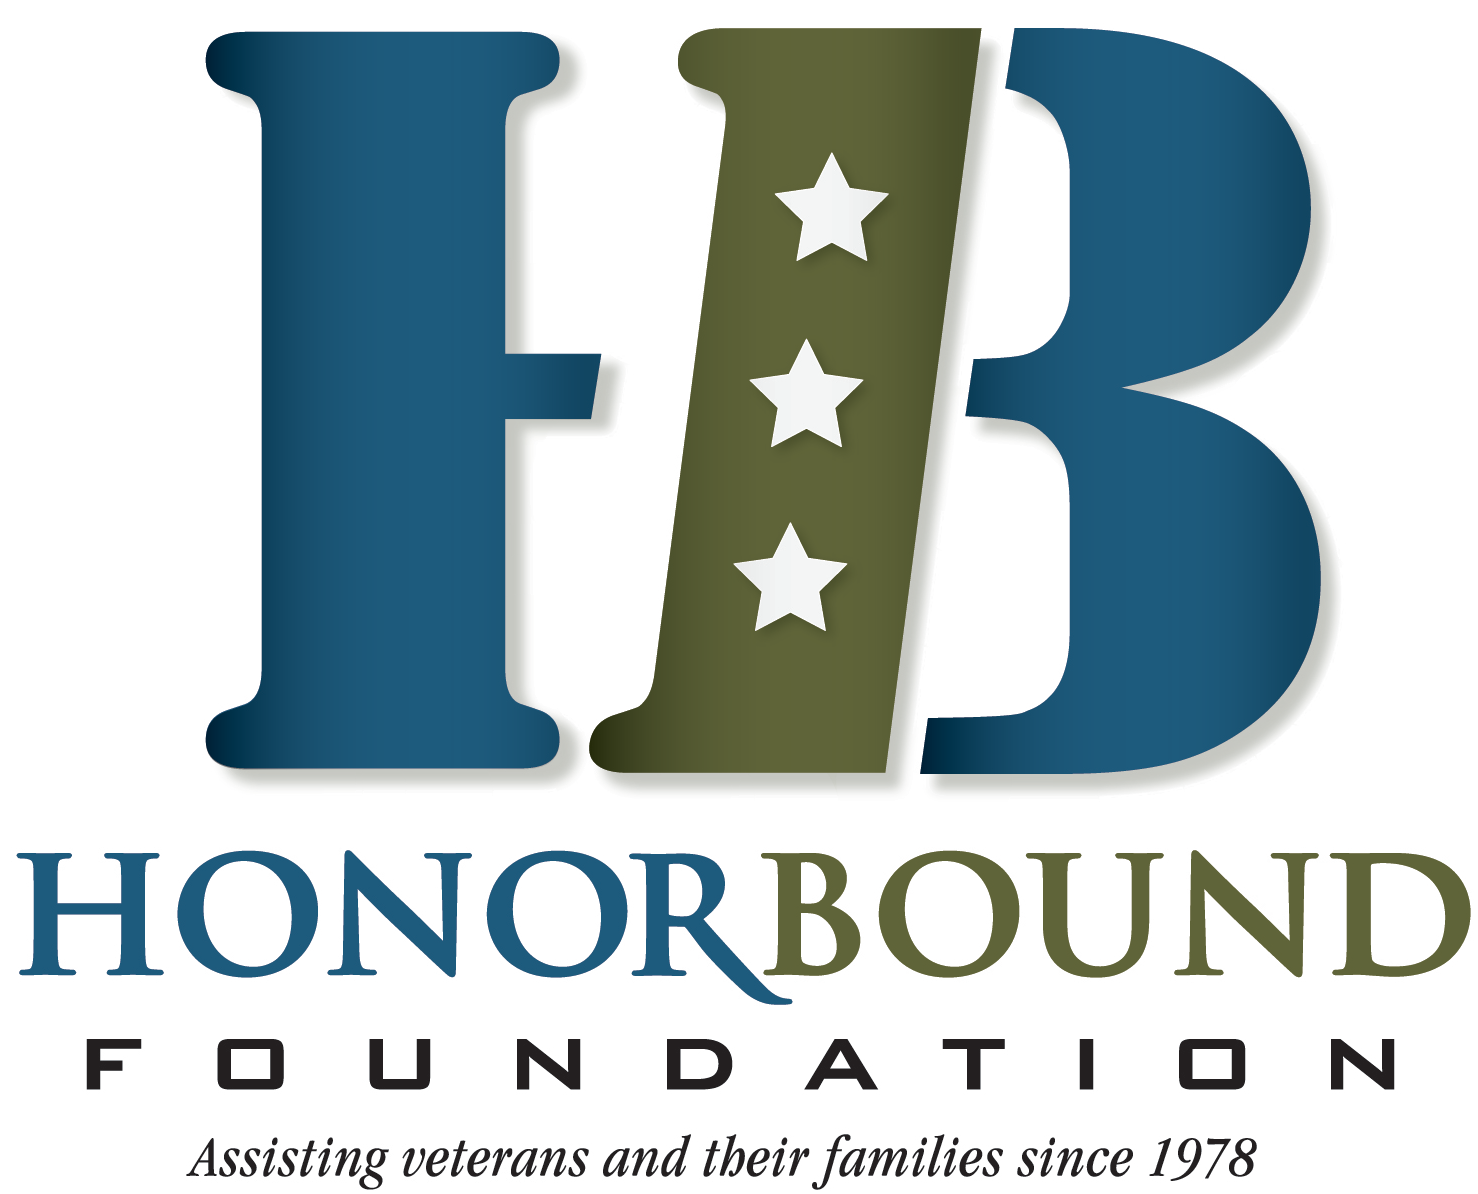 Montana Car Donations - HonorBound Foundation - DonatecarUSA.com